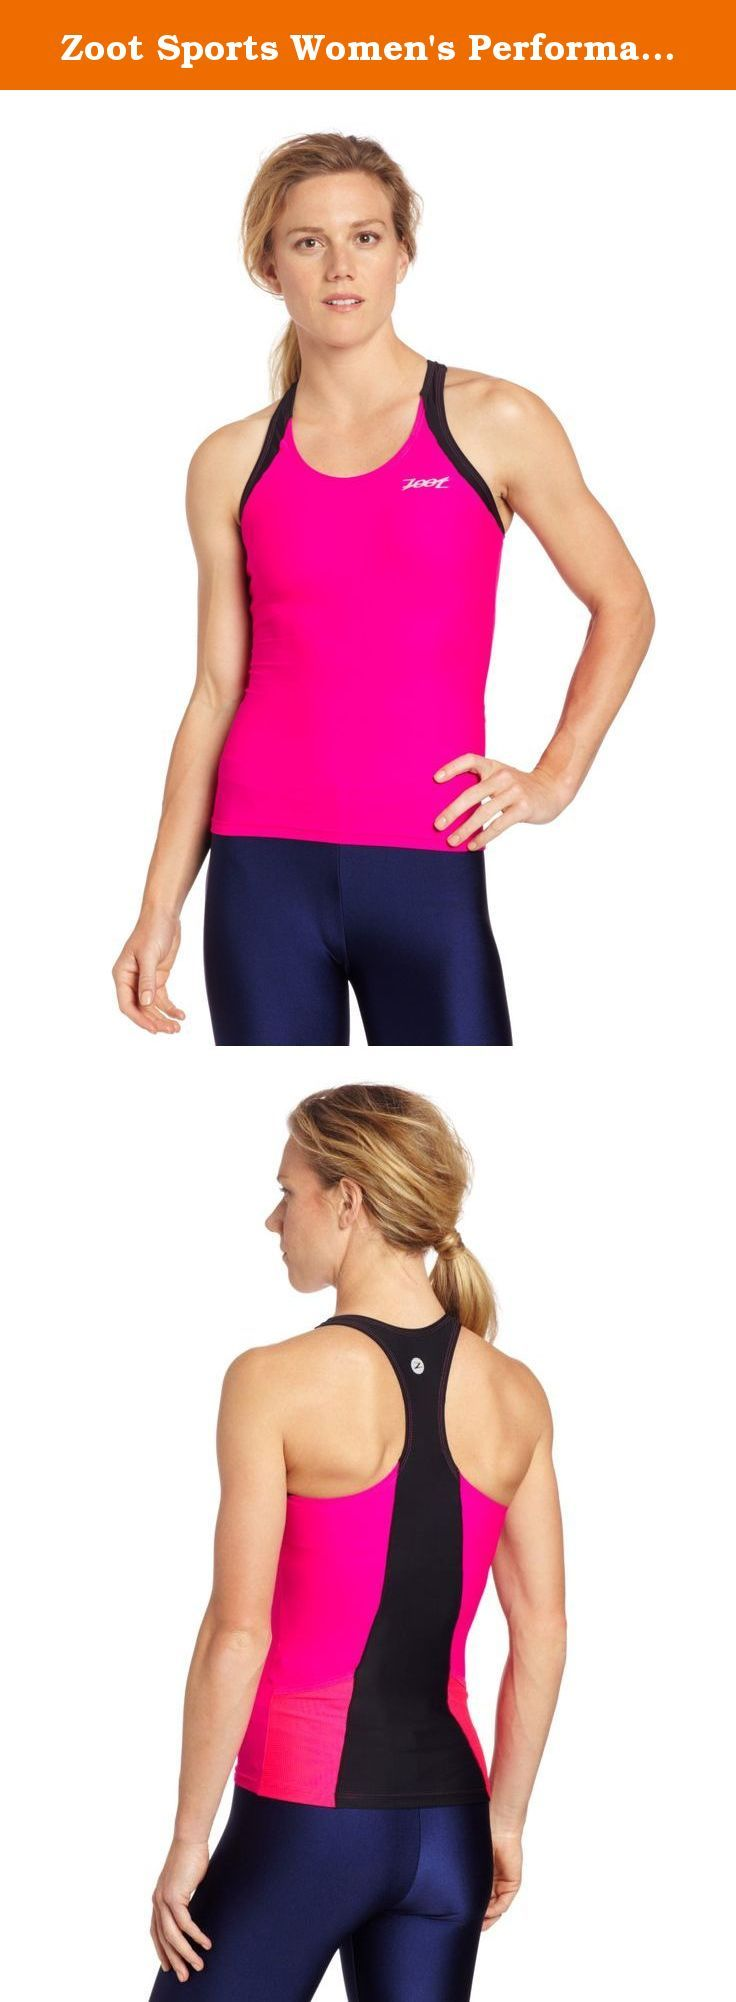 Zoot Sports Women's Performance Tri Racerback Top. By design races are long and hard. And, by design, Zoot's triathlon apparel keeps you supported through all of it.